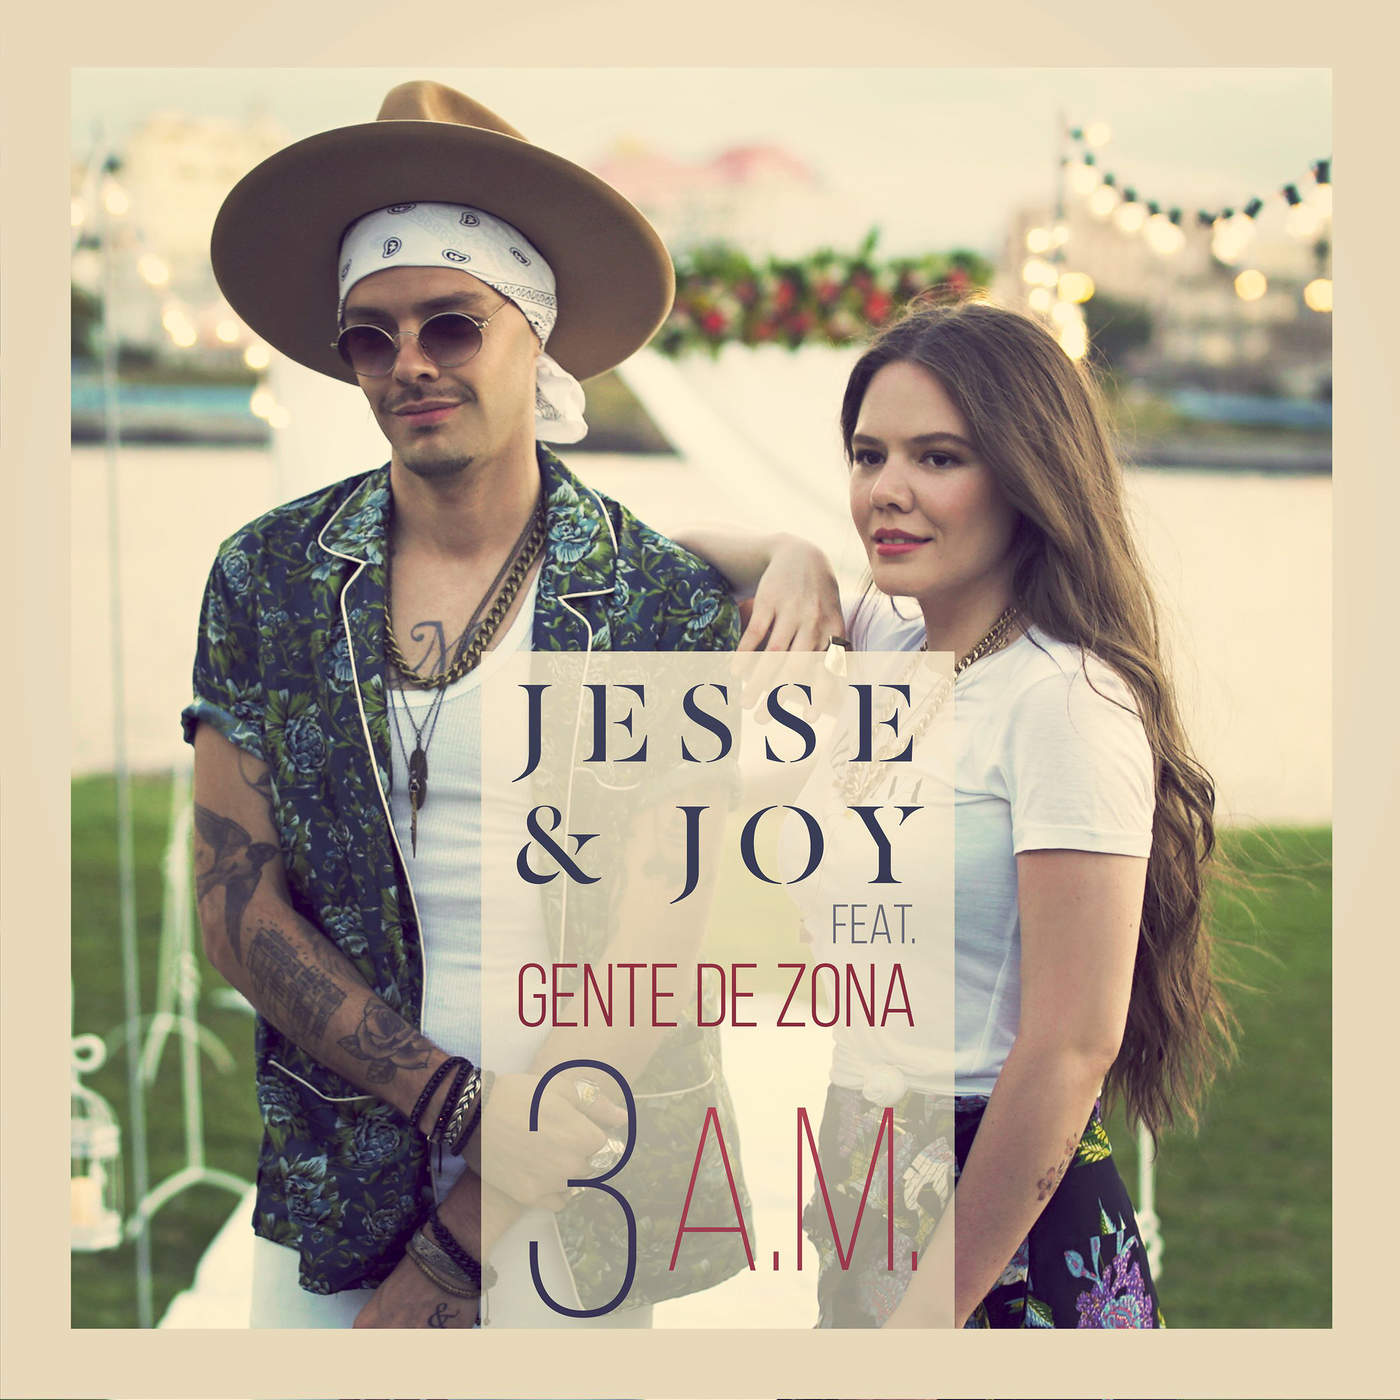 Jesse & Joy - 3 A.M. (feat. Gente de Zona) - Single